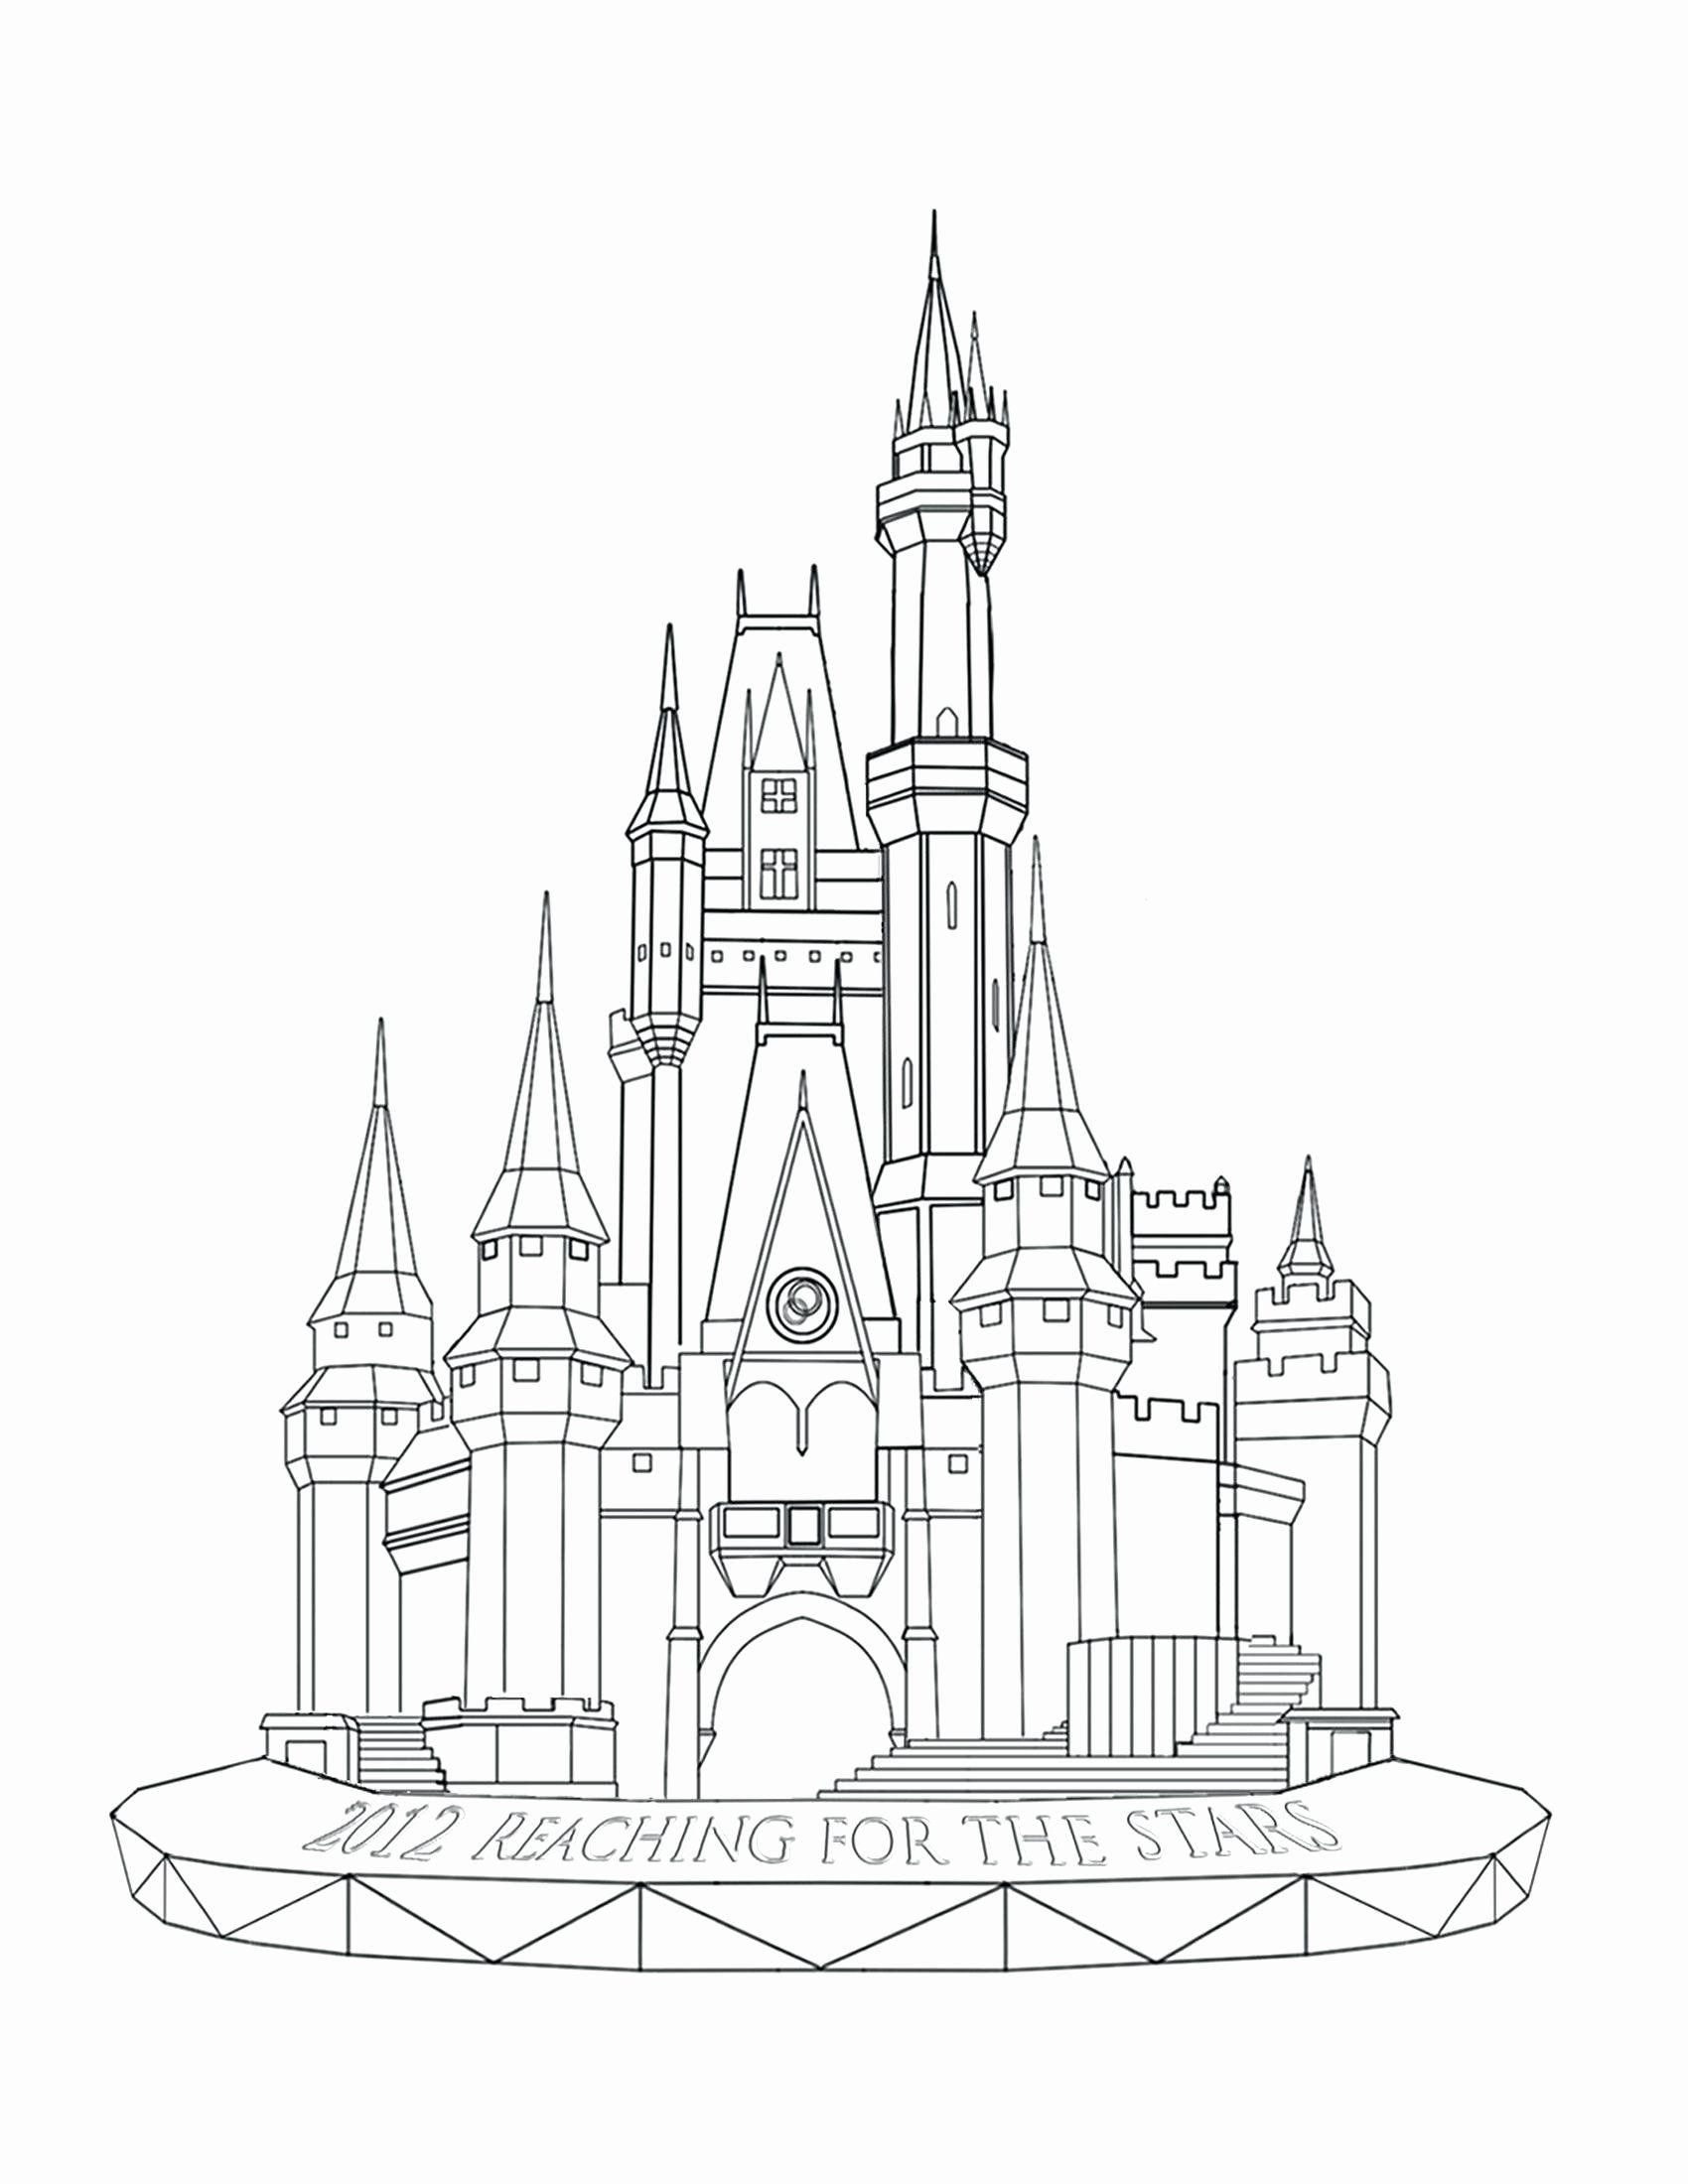 Princess And Castle Coloring Pages Best Of Castle Images For Coloring Axionsheet Castle Coloring Page Disney Castle Drawing Castle Painting